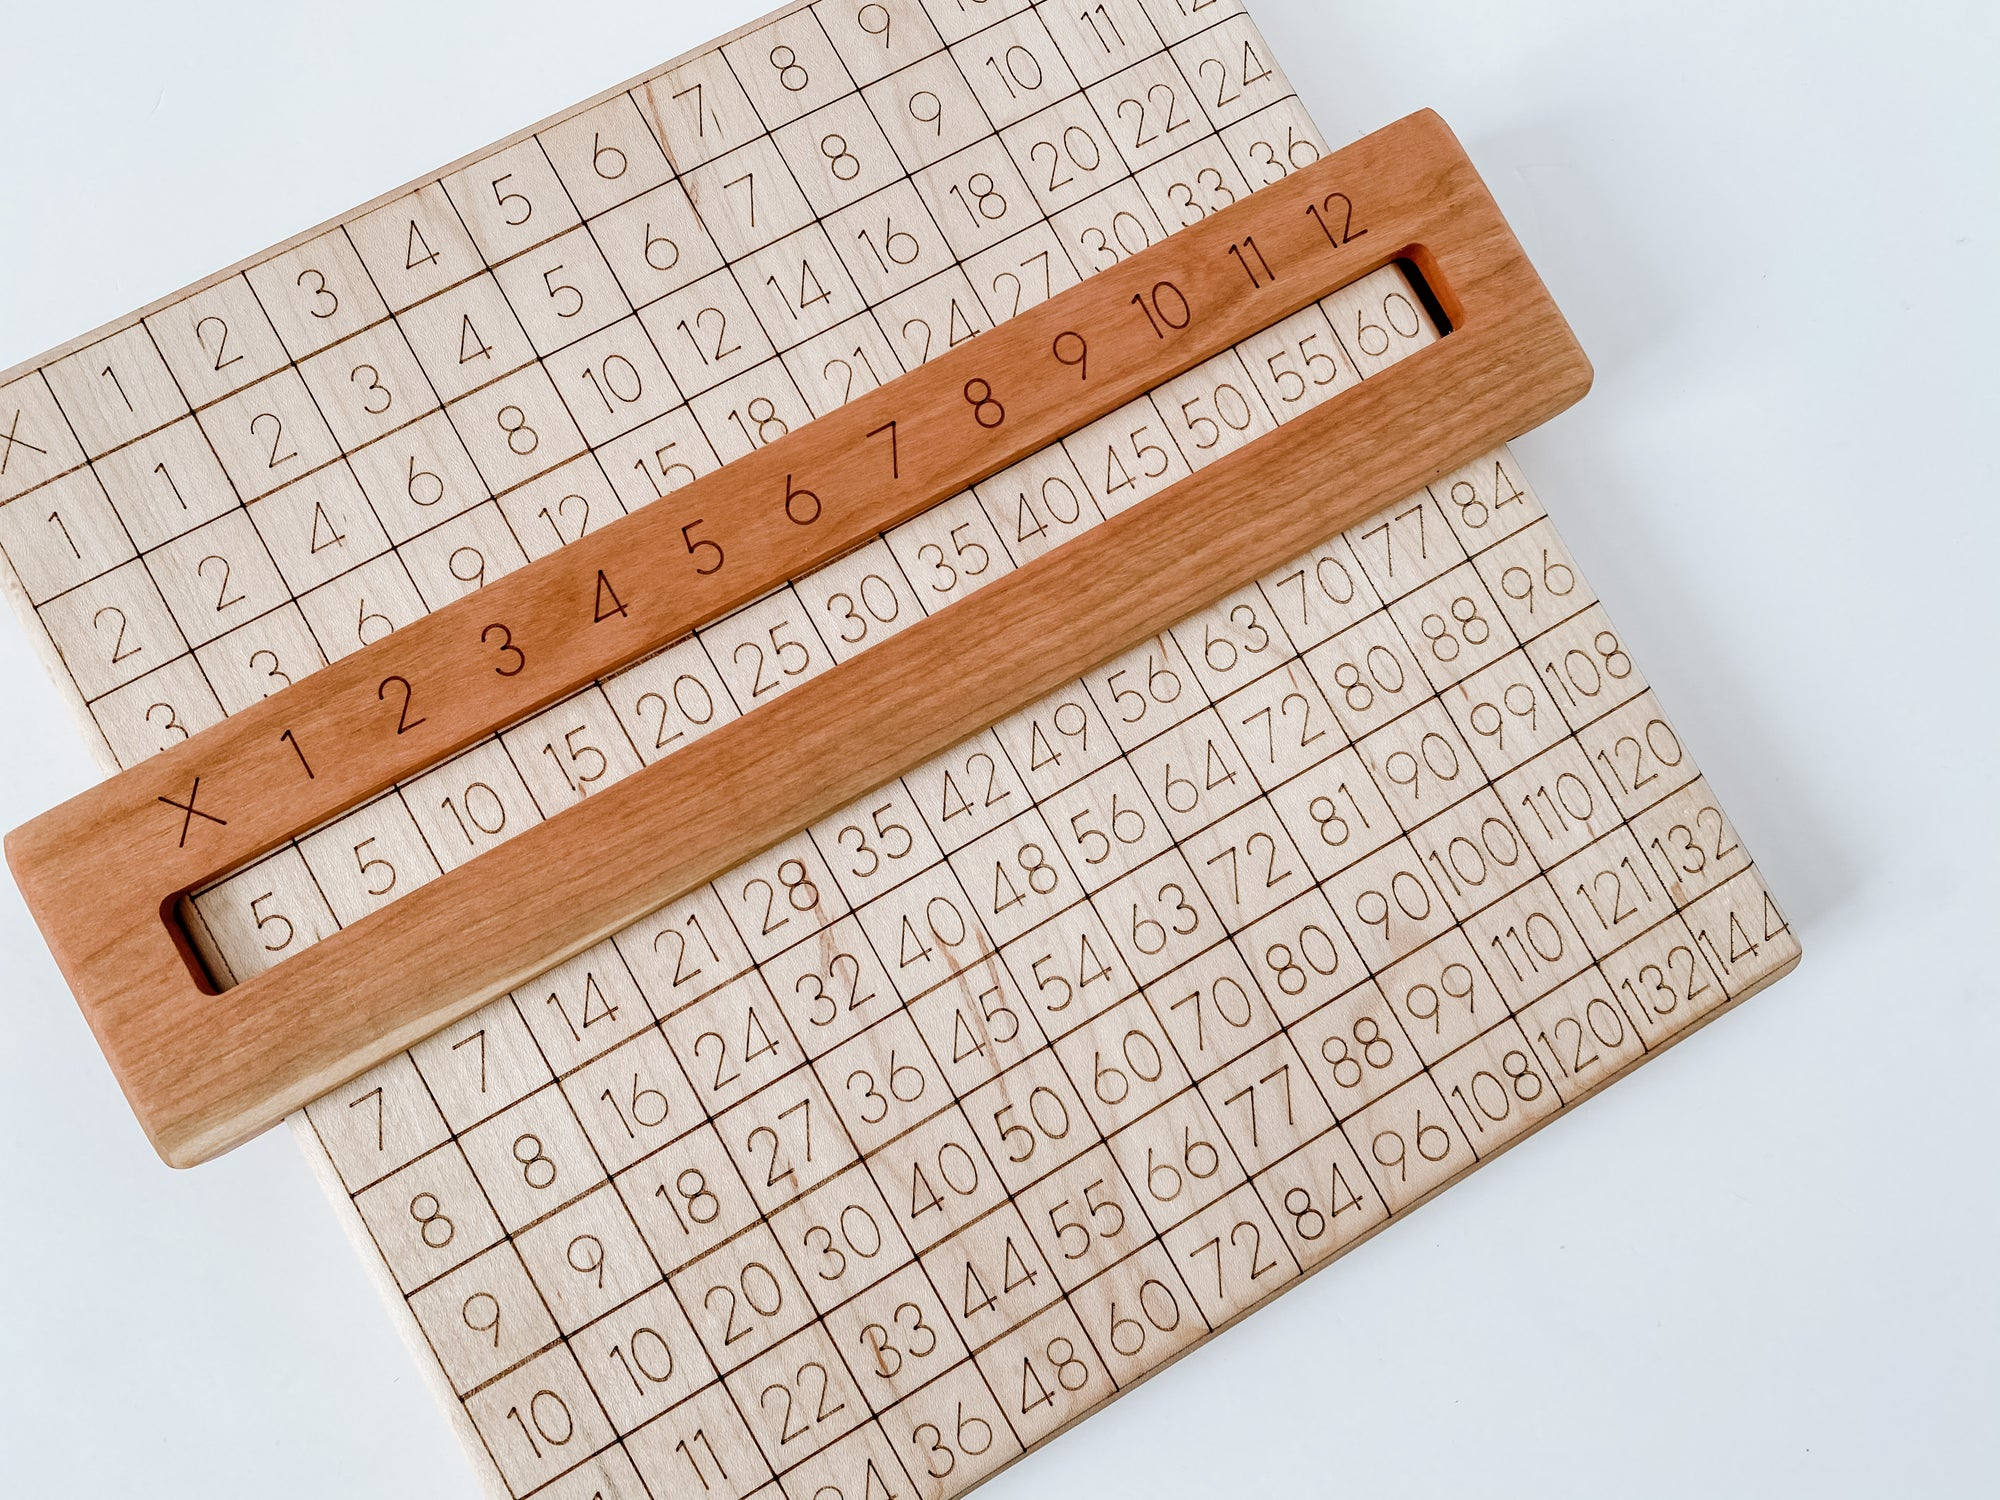 Wooden multiplication board with a viewfinder.